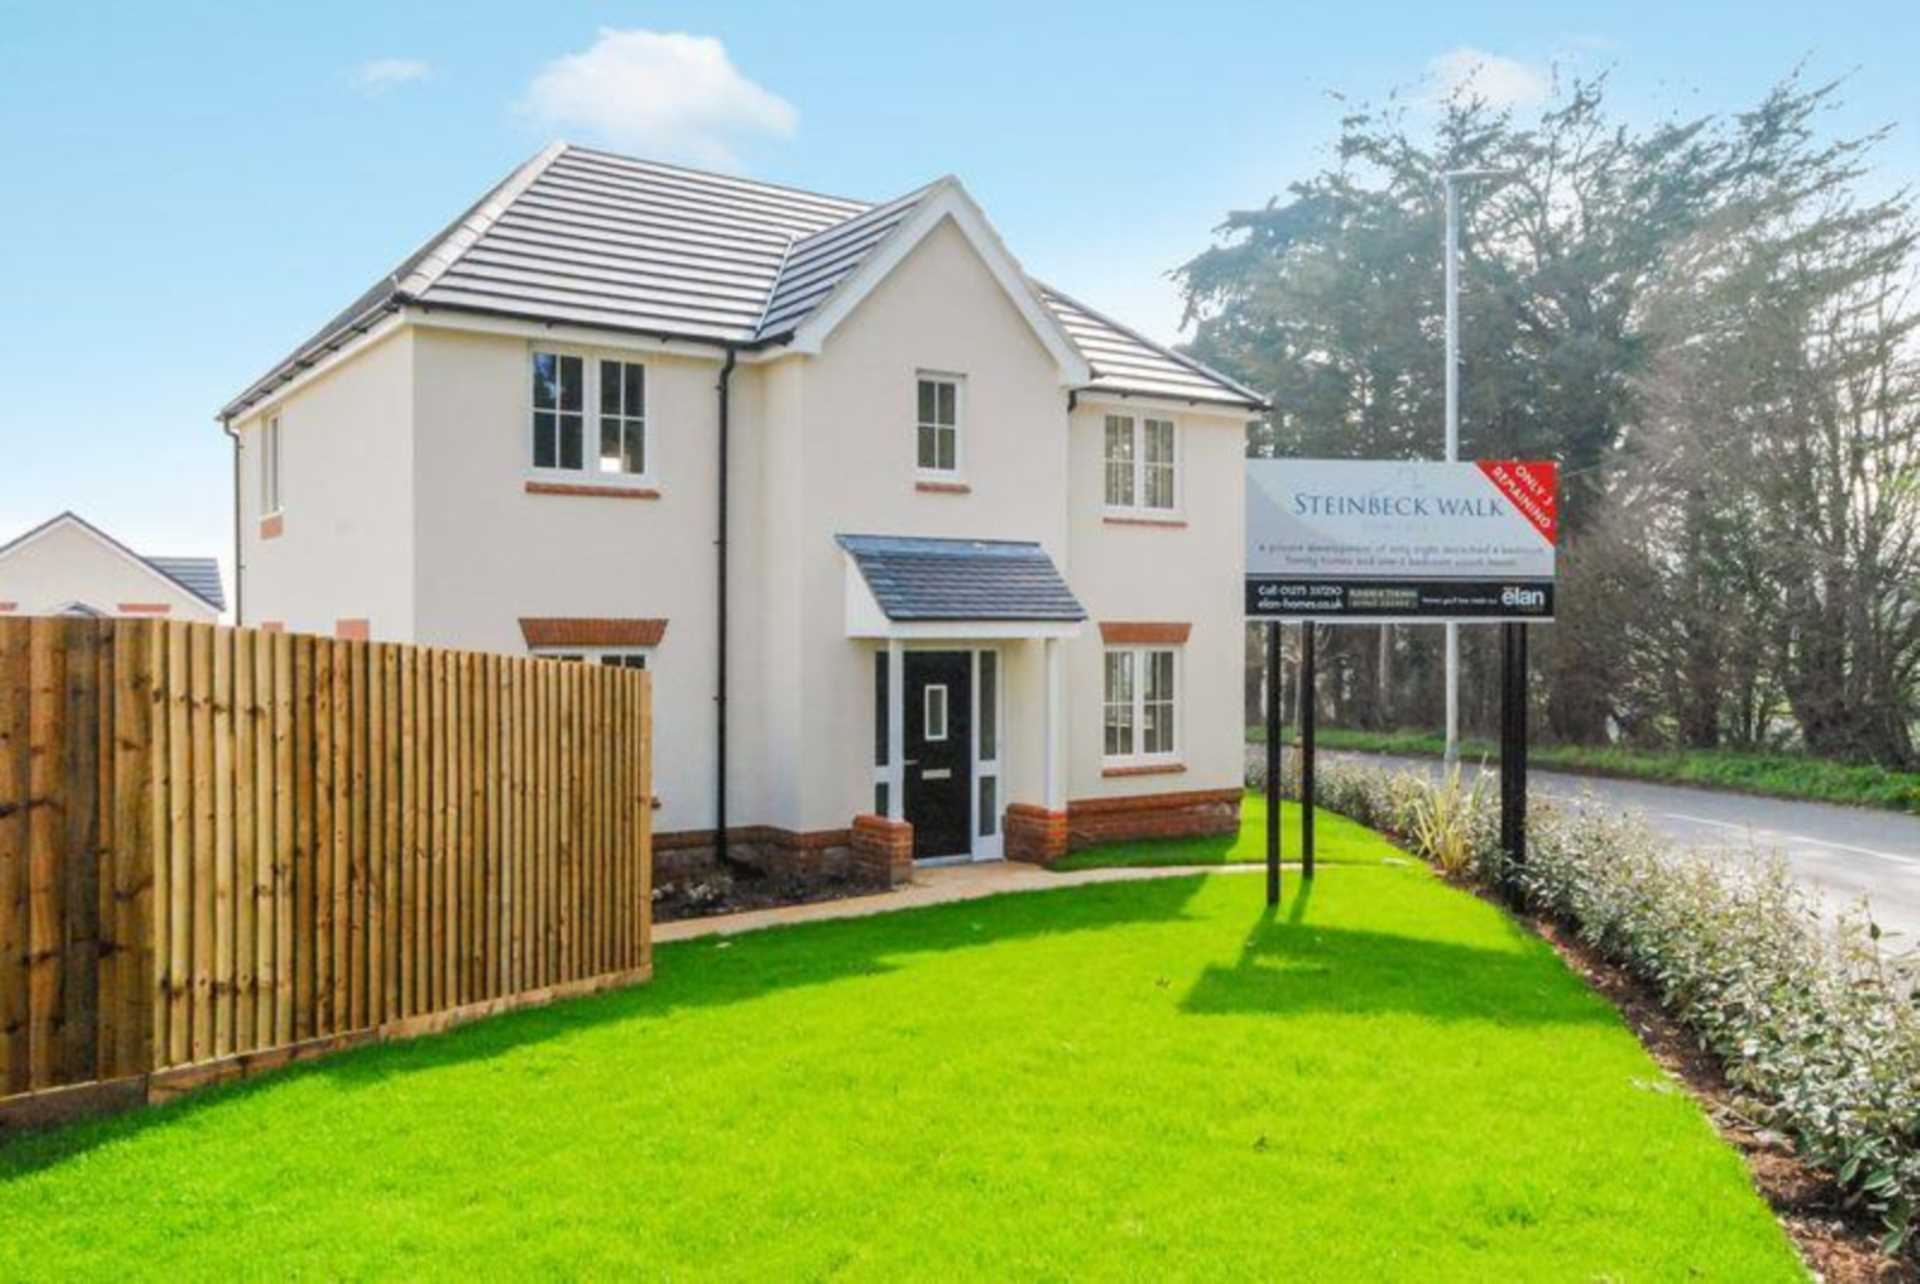 Swallows Property Letting - 4 Bedroom Detached, Frome Road, Bruton